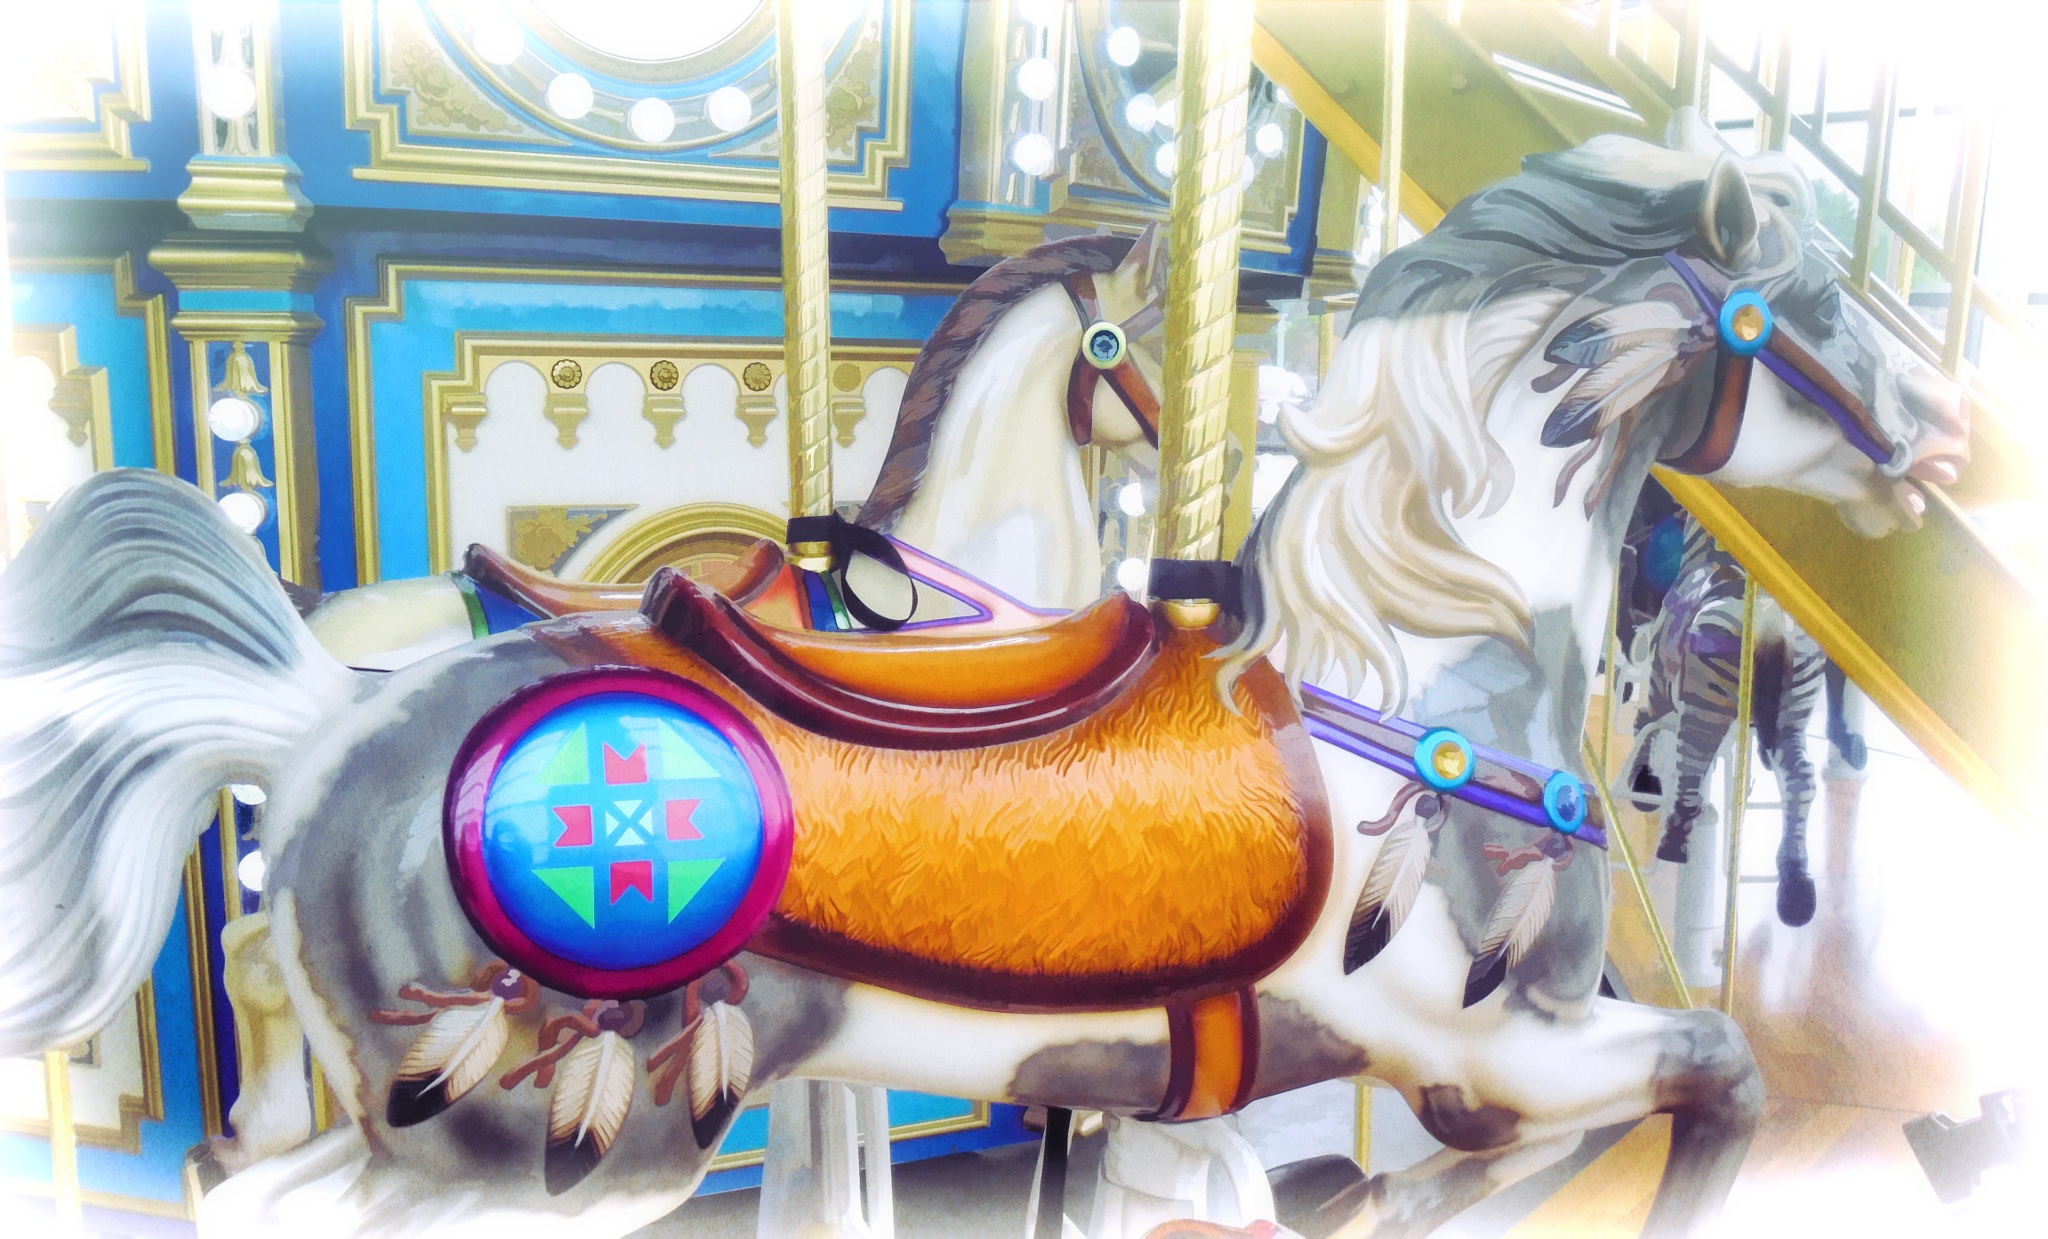 carousel dreams by cnnhlms